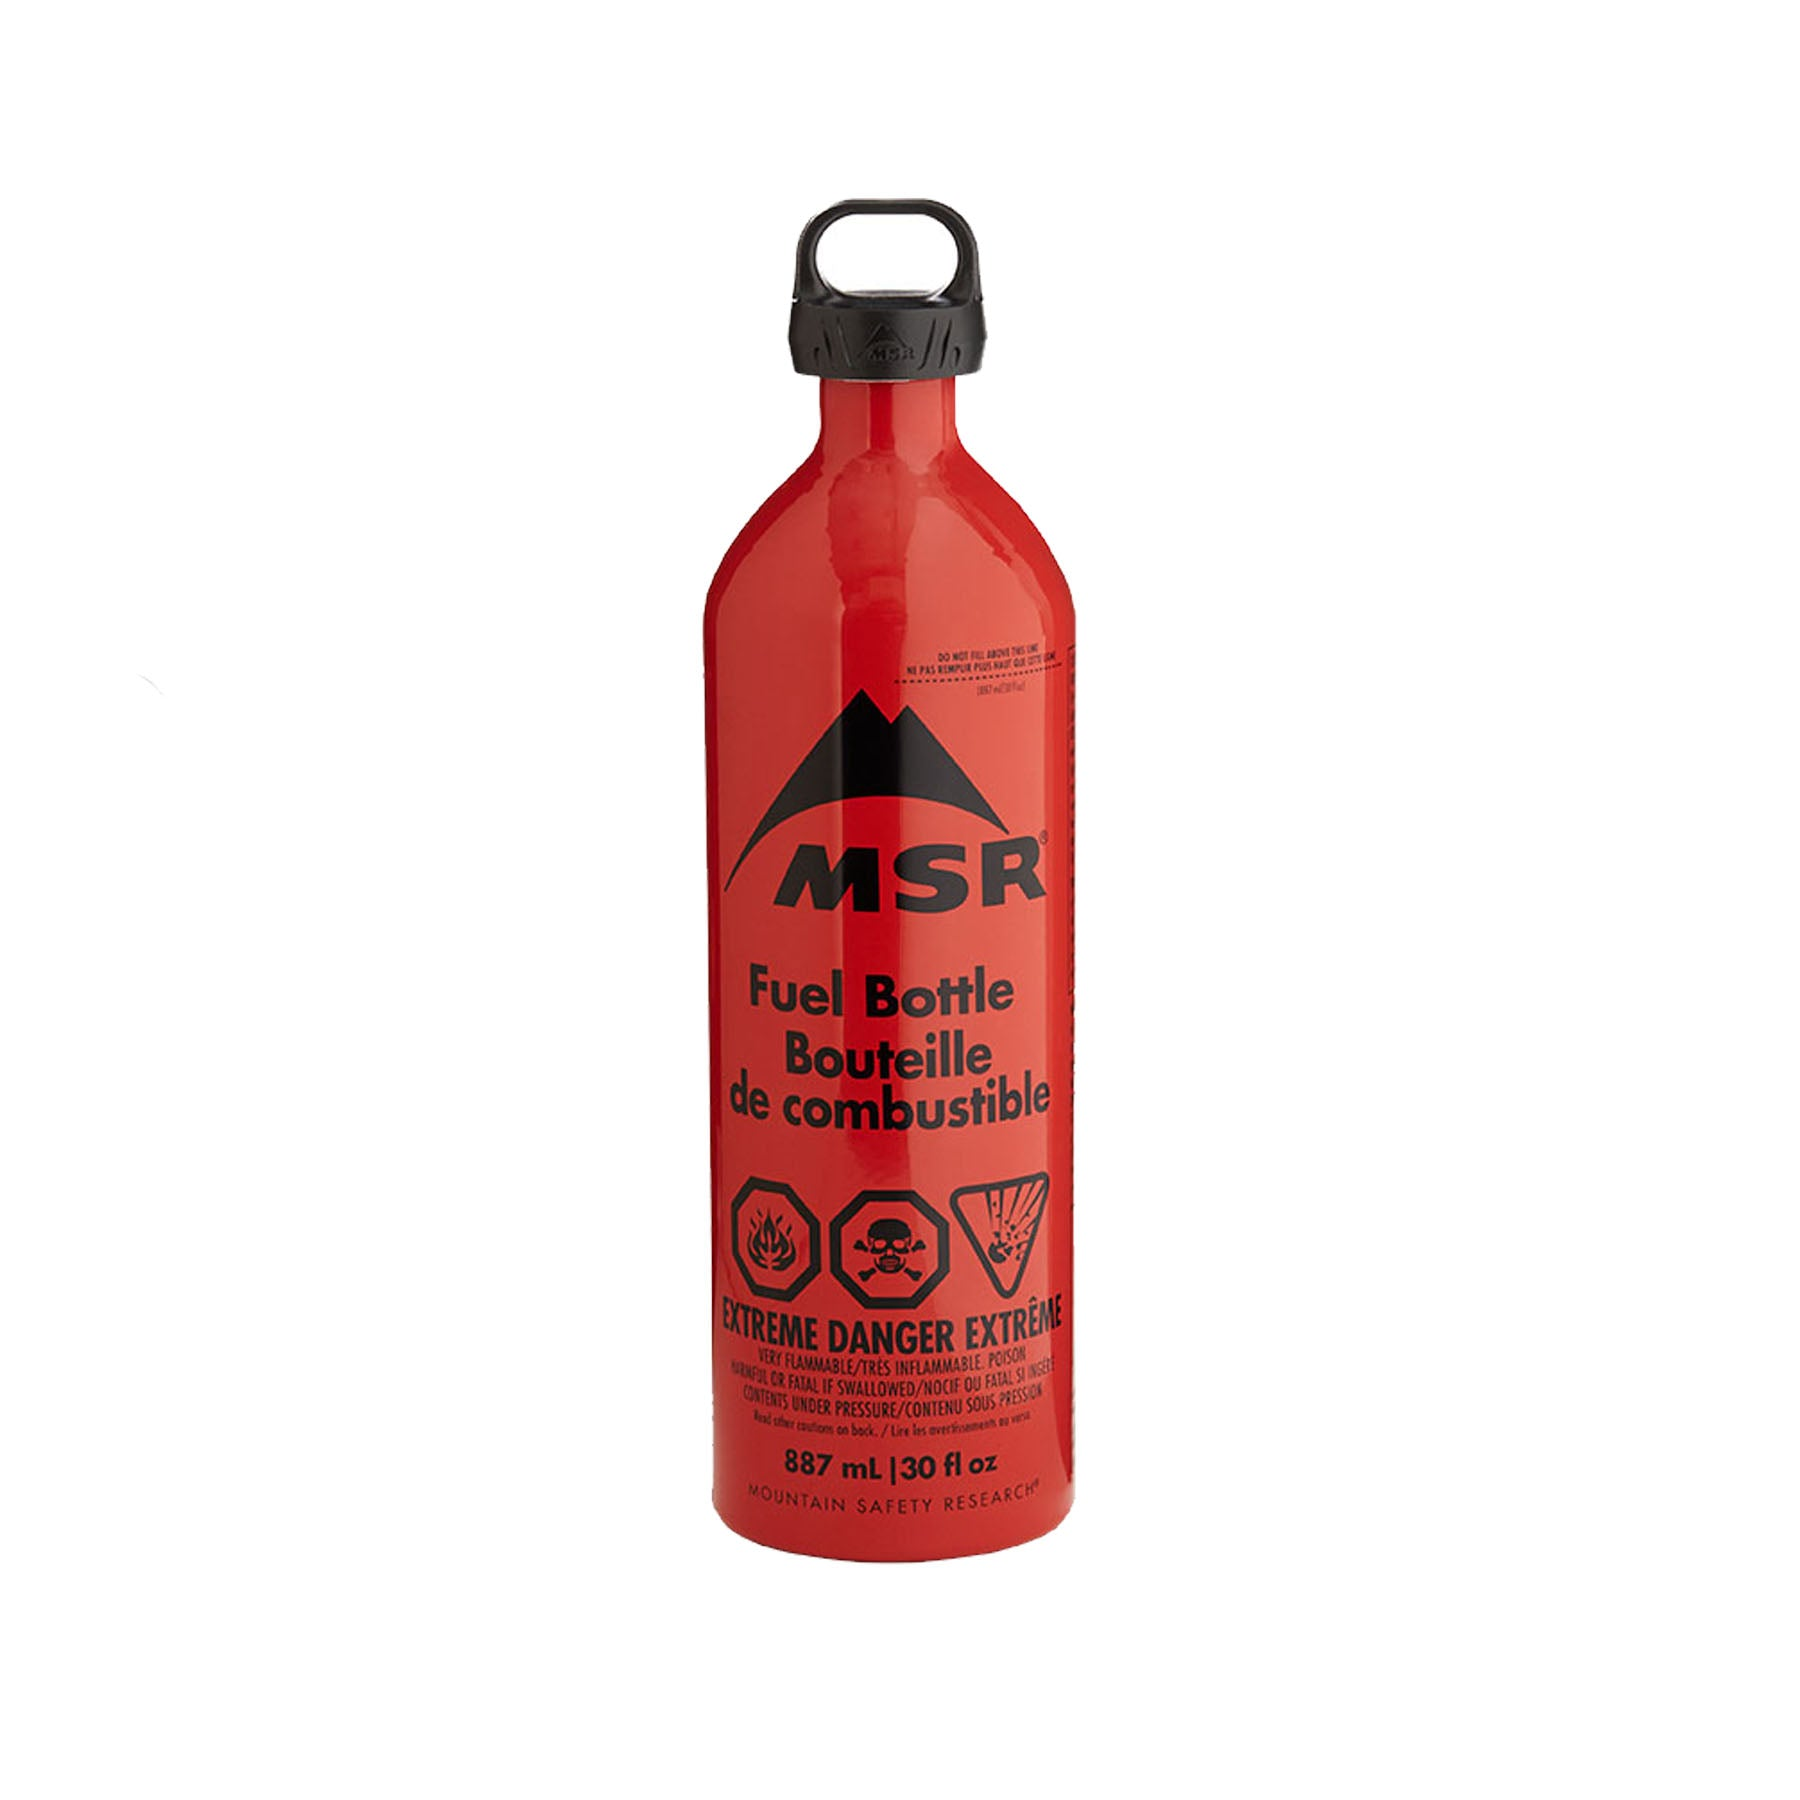 MSR Fuel Bottle - 30 fl oz